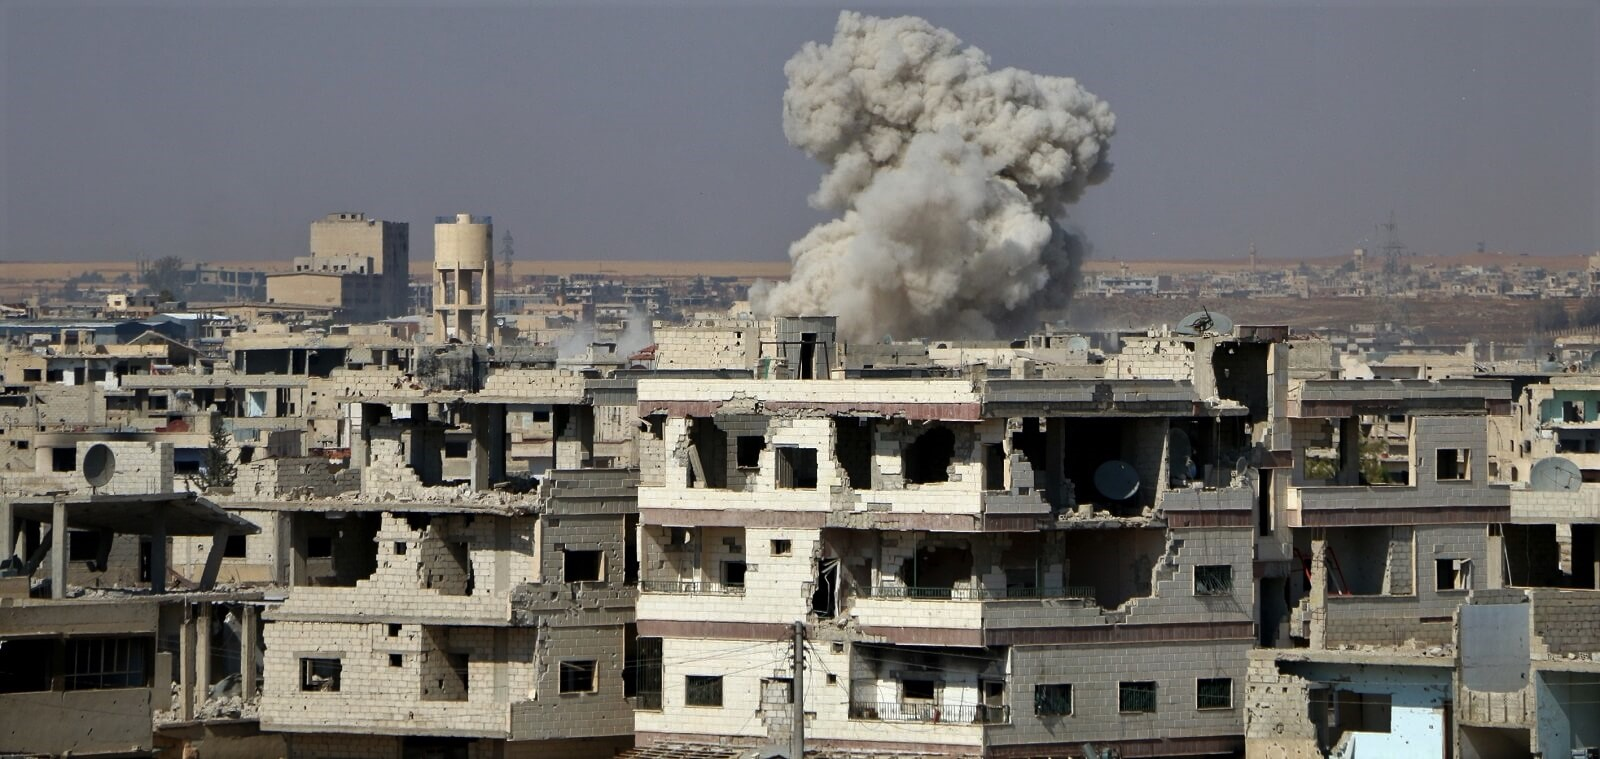 Smoke rises after attacks by the Assad regime on Daraa, Syria (Photo: Muhammed Yusuf via Getty)